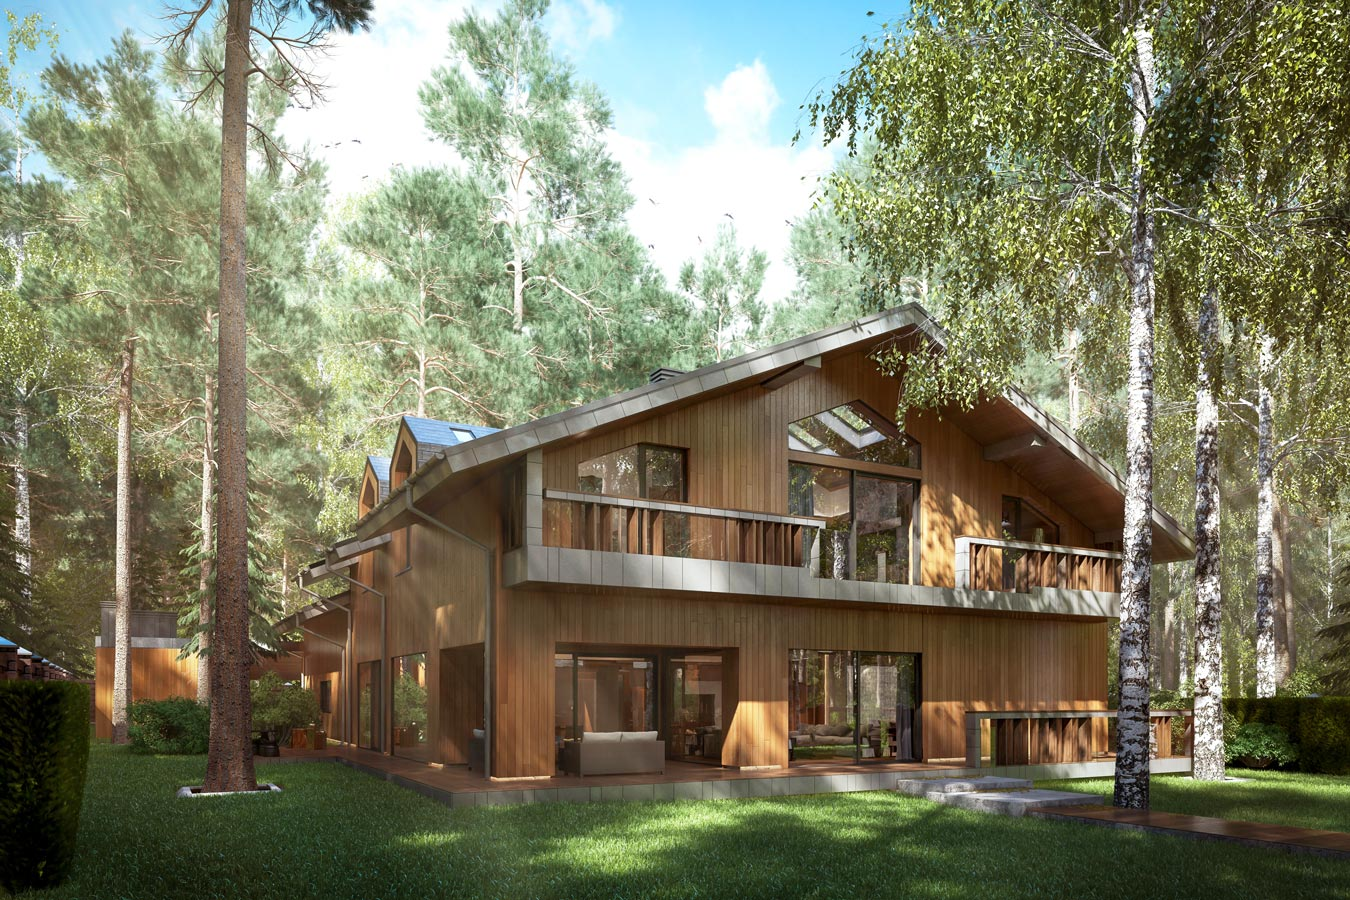 3d visualization eco-house in Zhukovka - exterior